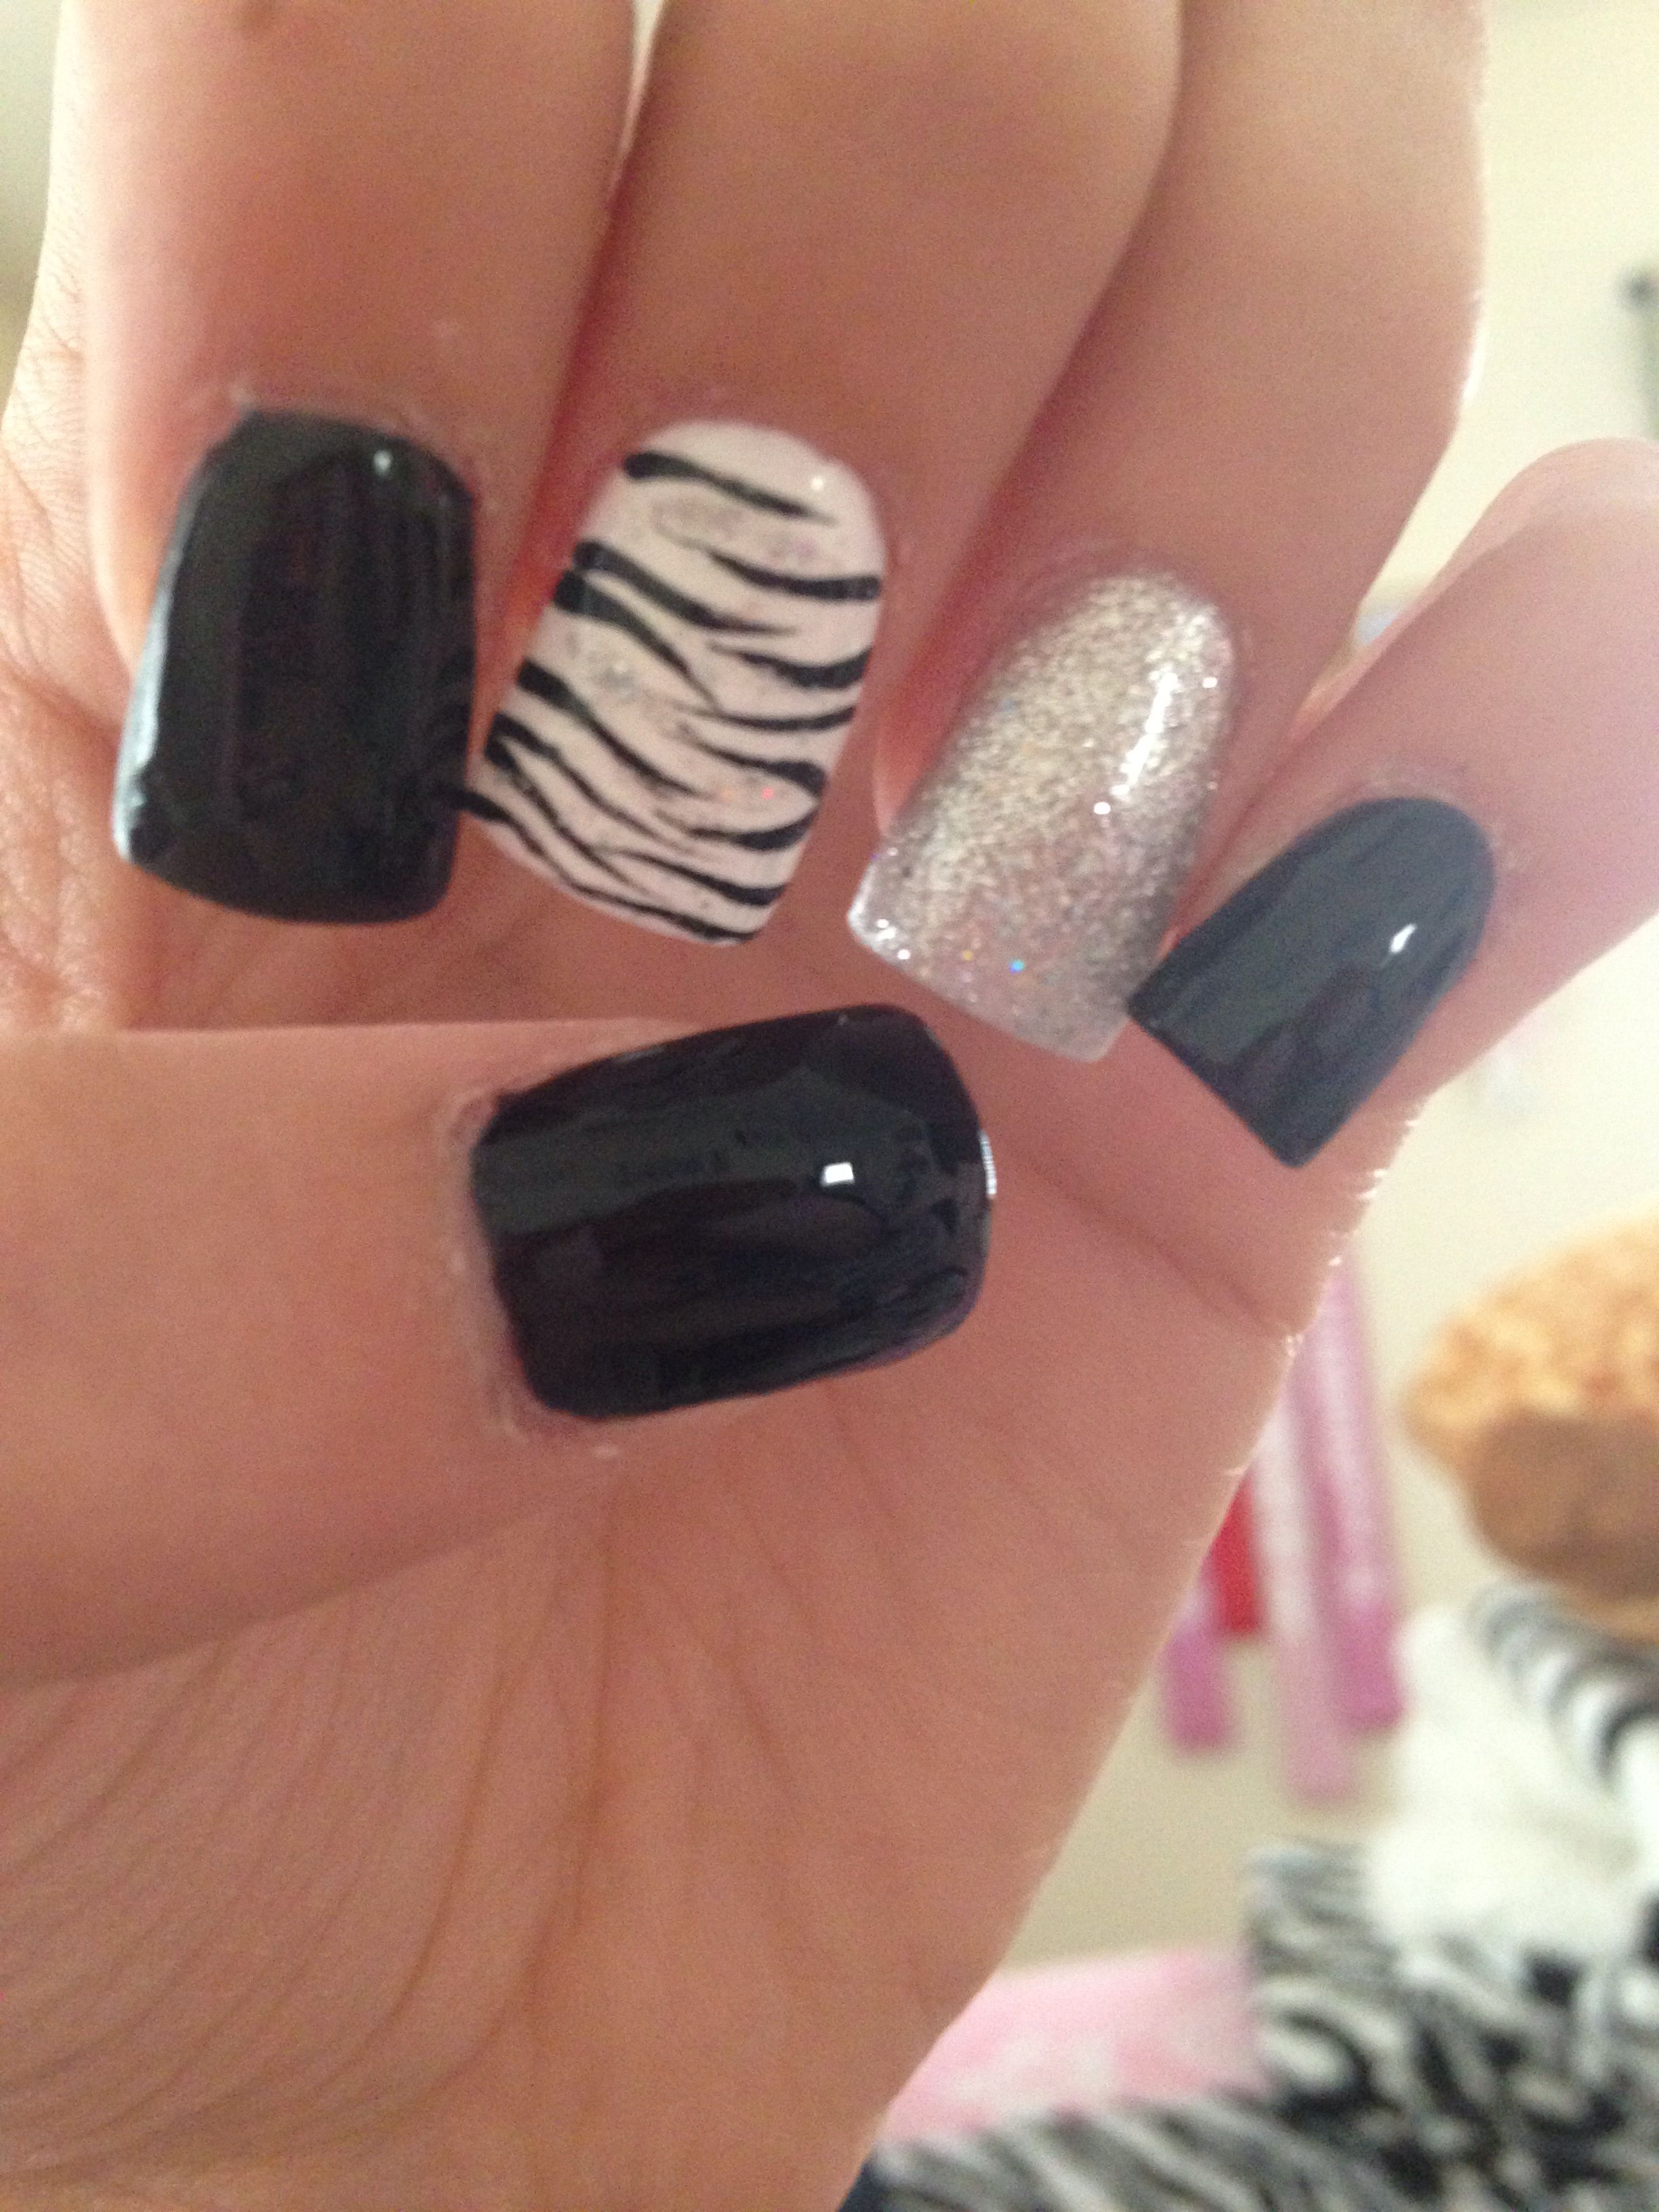 cute fake nails | Nails | Pinterest | Makeup, Nail nail and Black nails